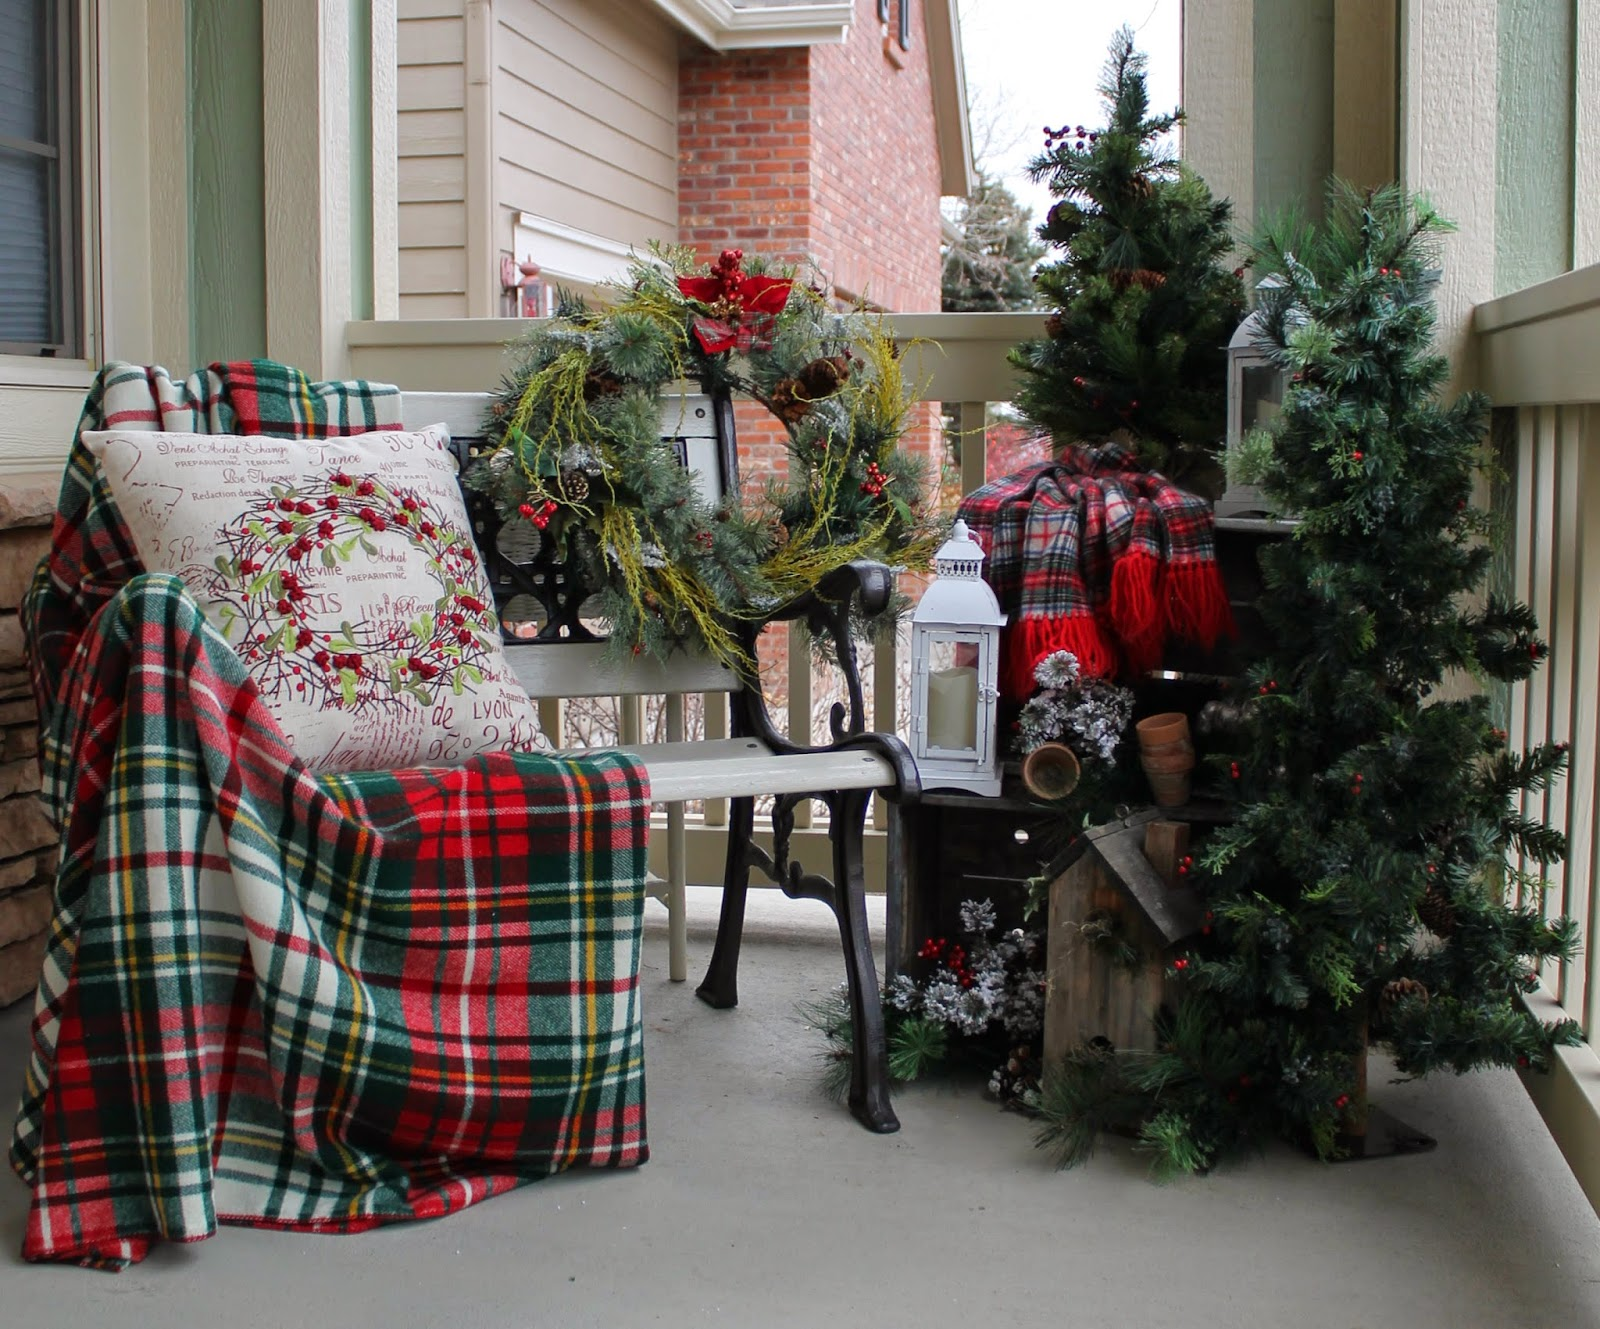 Outdoor decorating for christmas - Holiday Welcome Bench